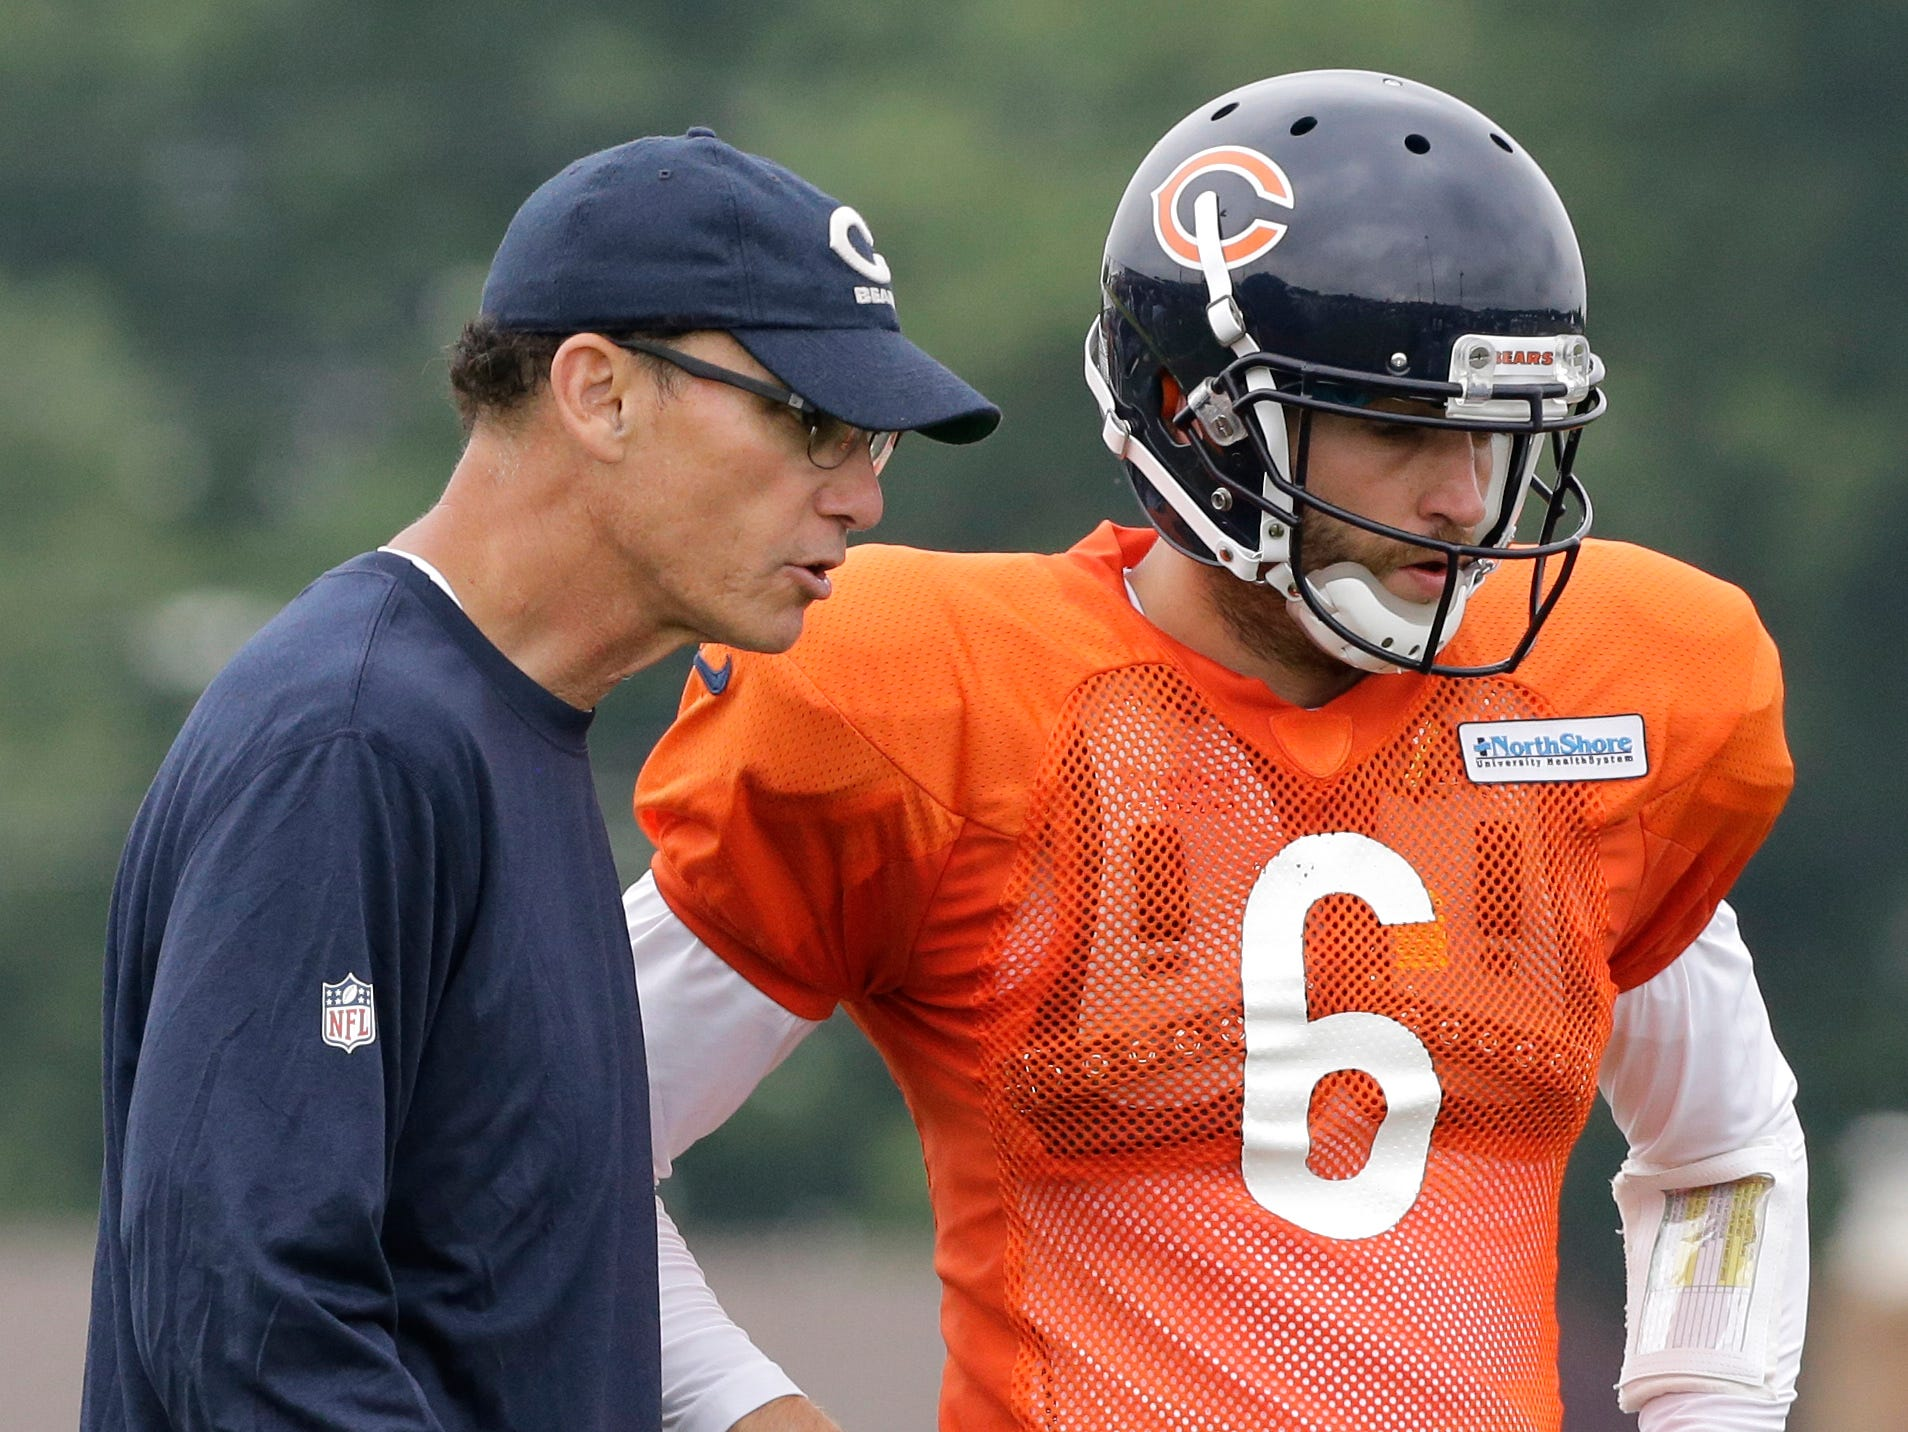 25. Jay Cutler, Chicago Bears